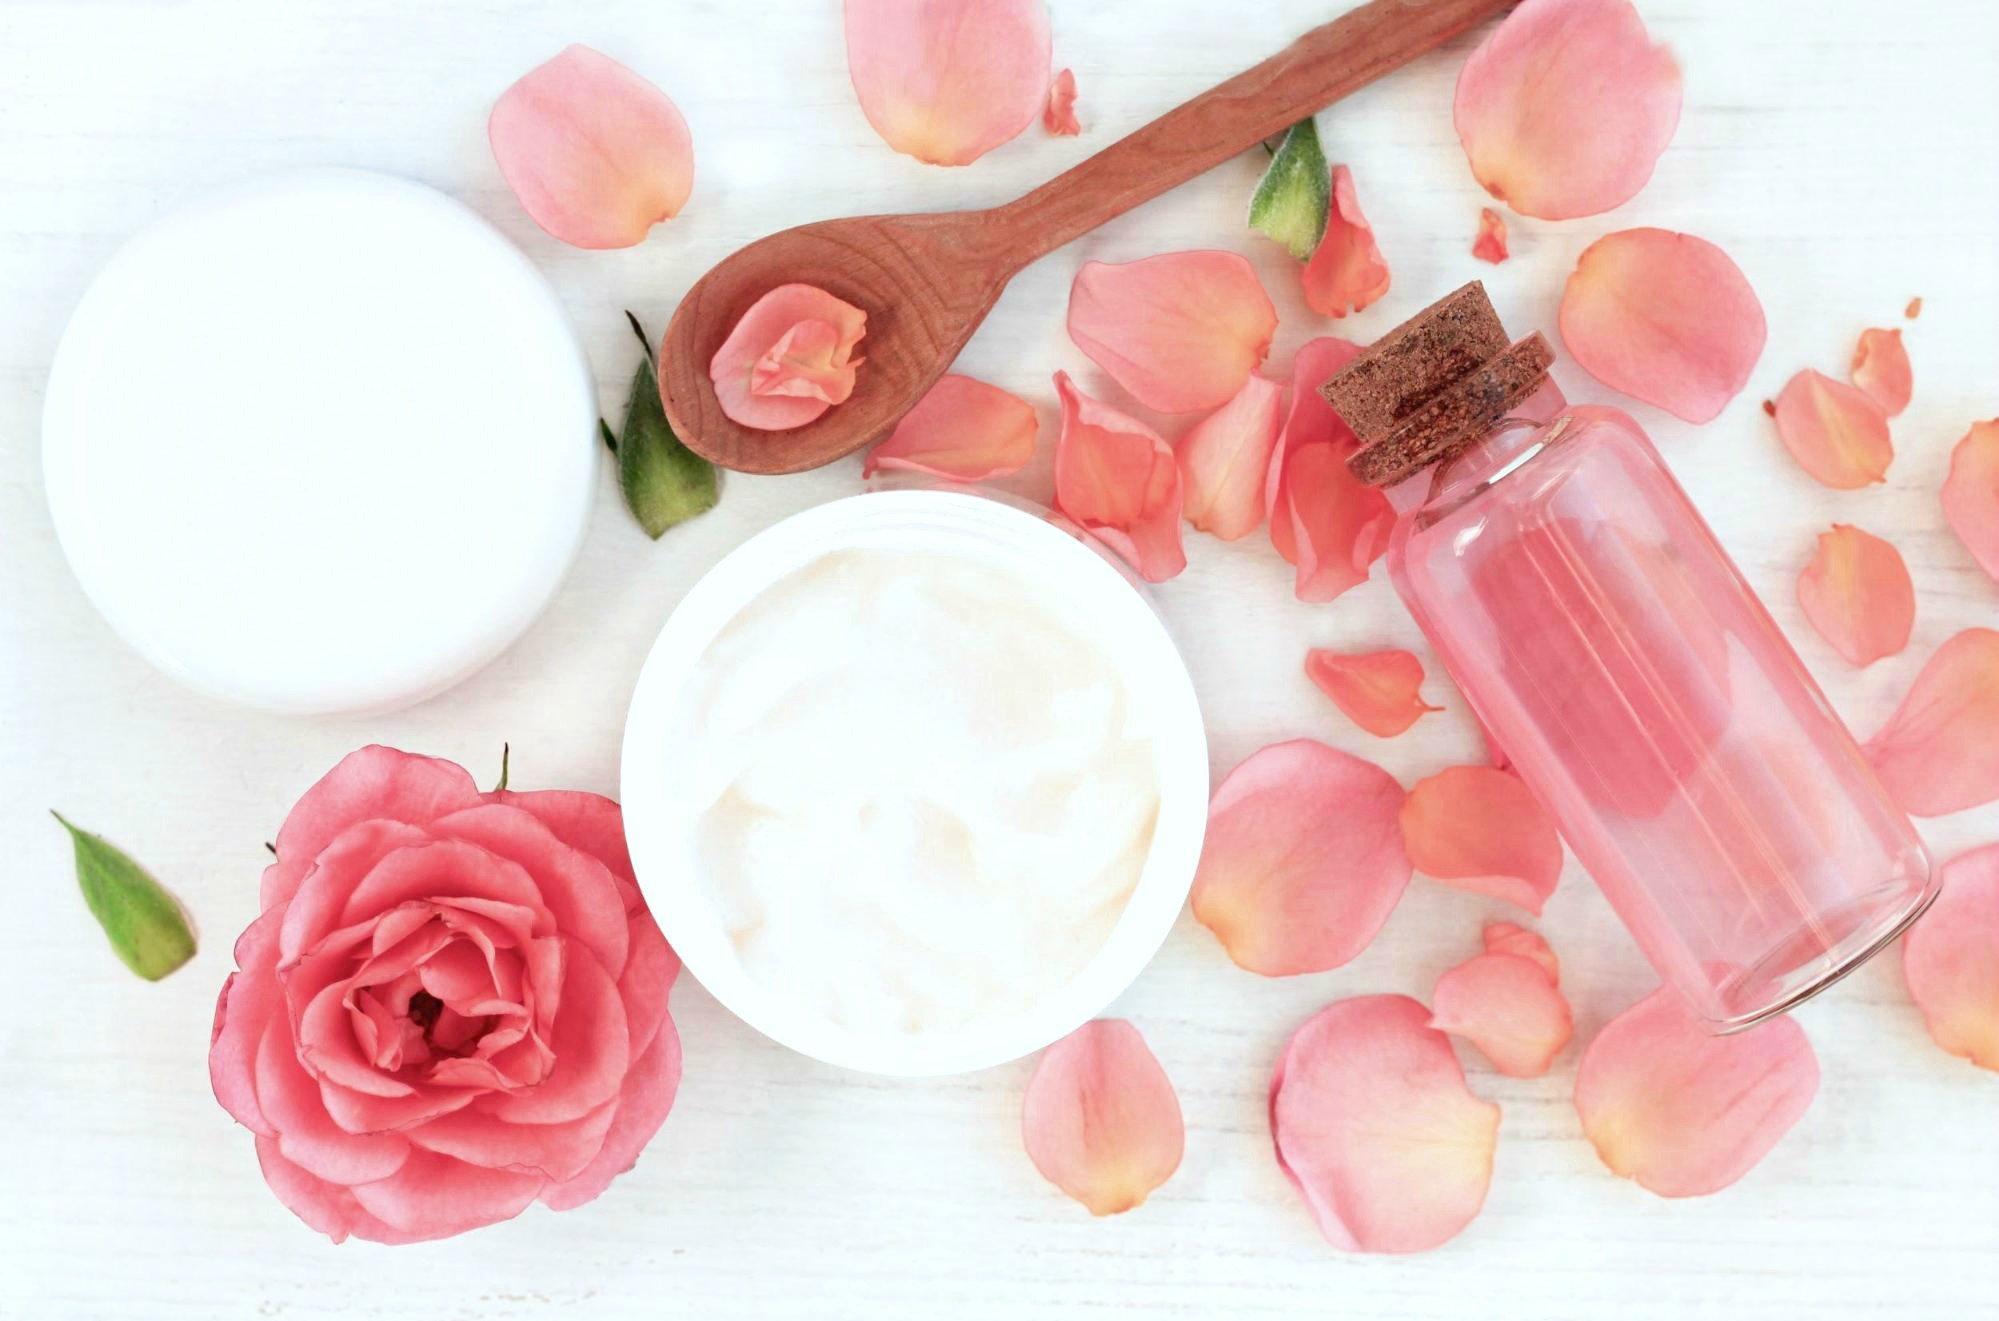 Coconut oil, rose hip, roses and rose petals.